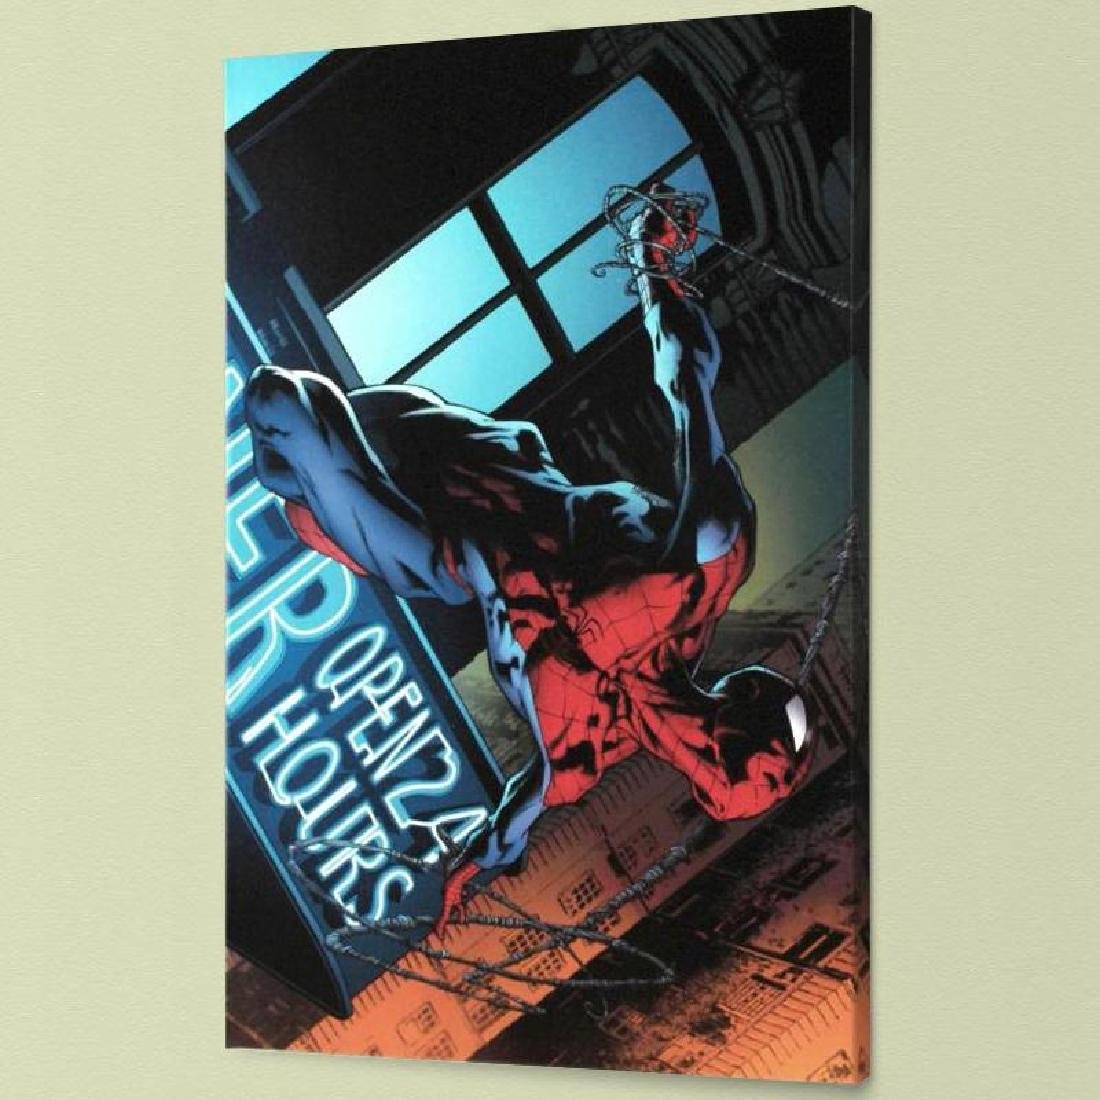 The Amazing Spider-Man #592 by Marvel Comics